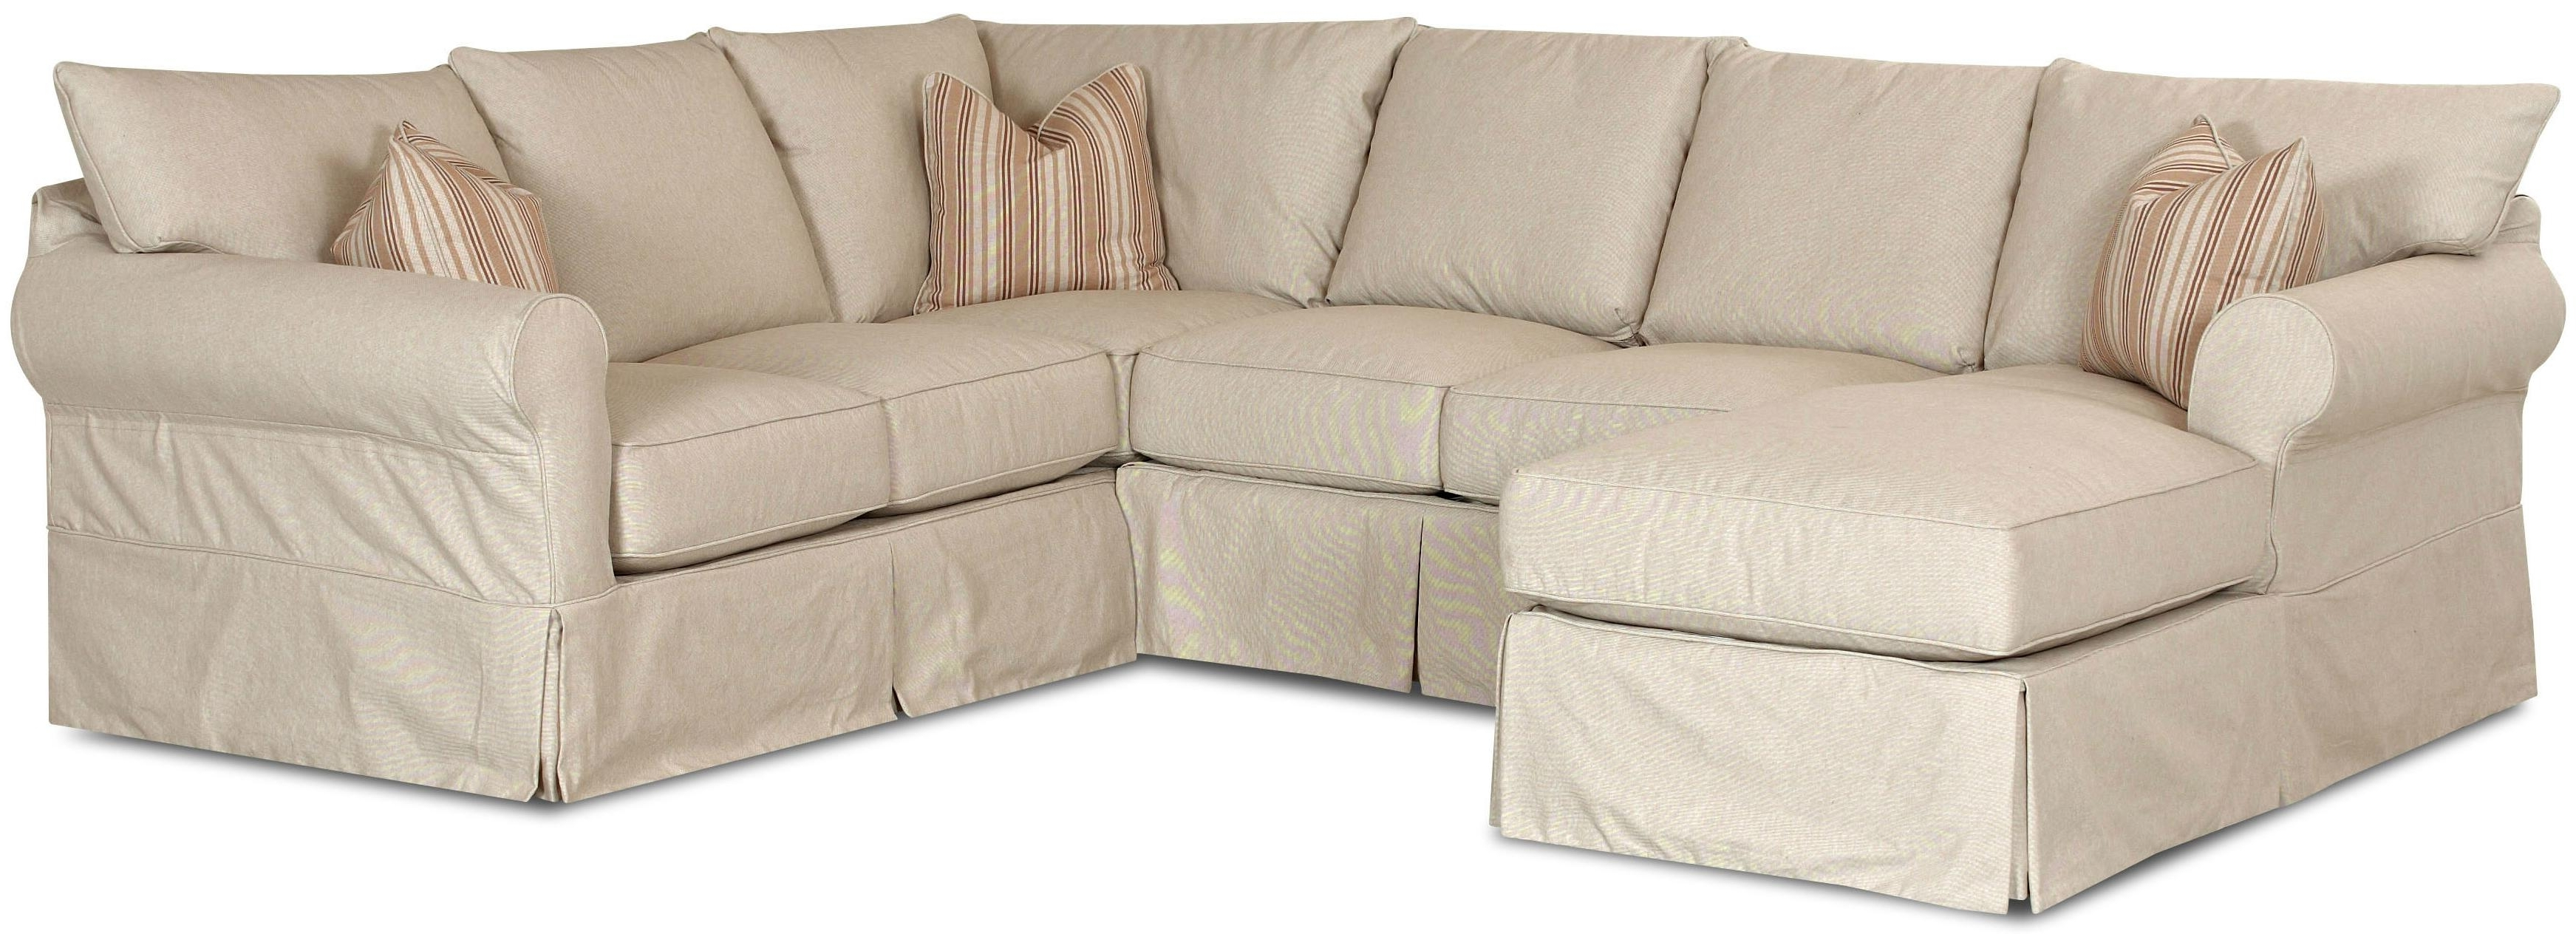 Sectional Sofa Slipcovers (View 3 of 15)